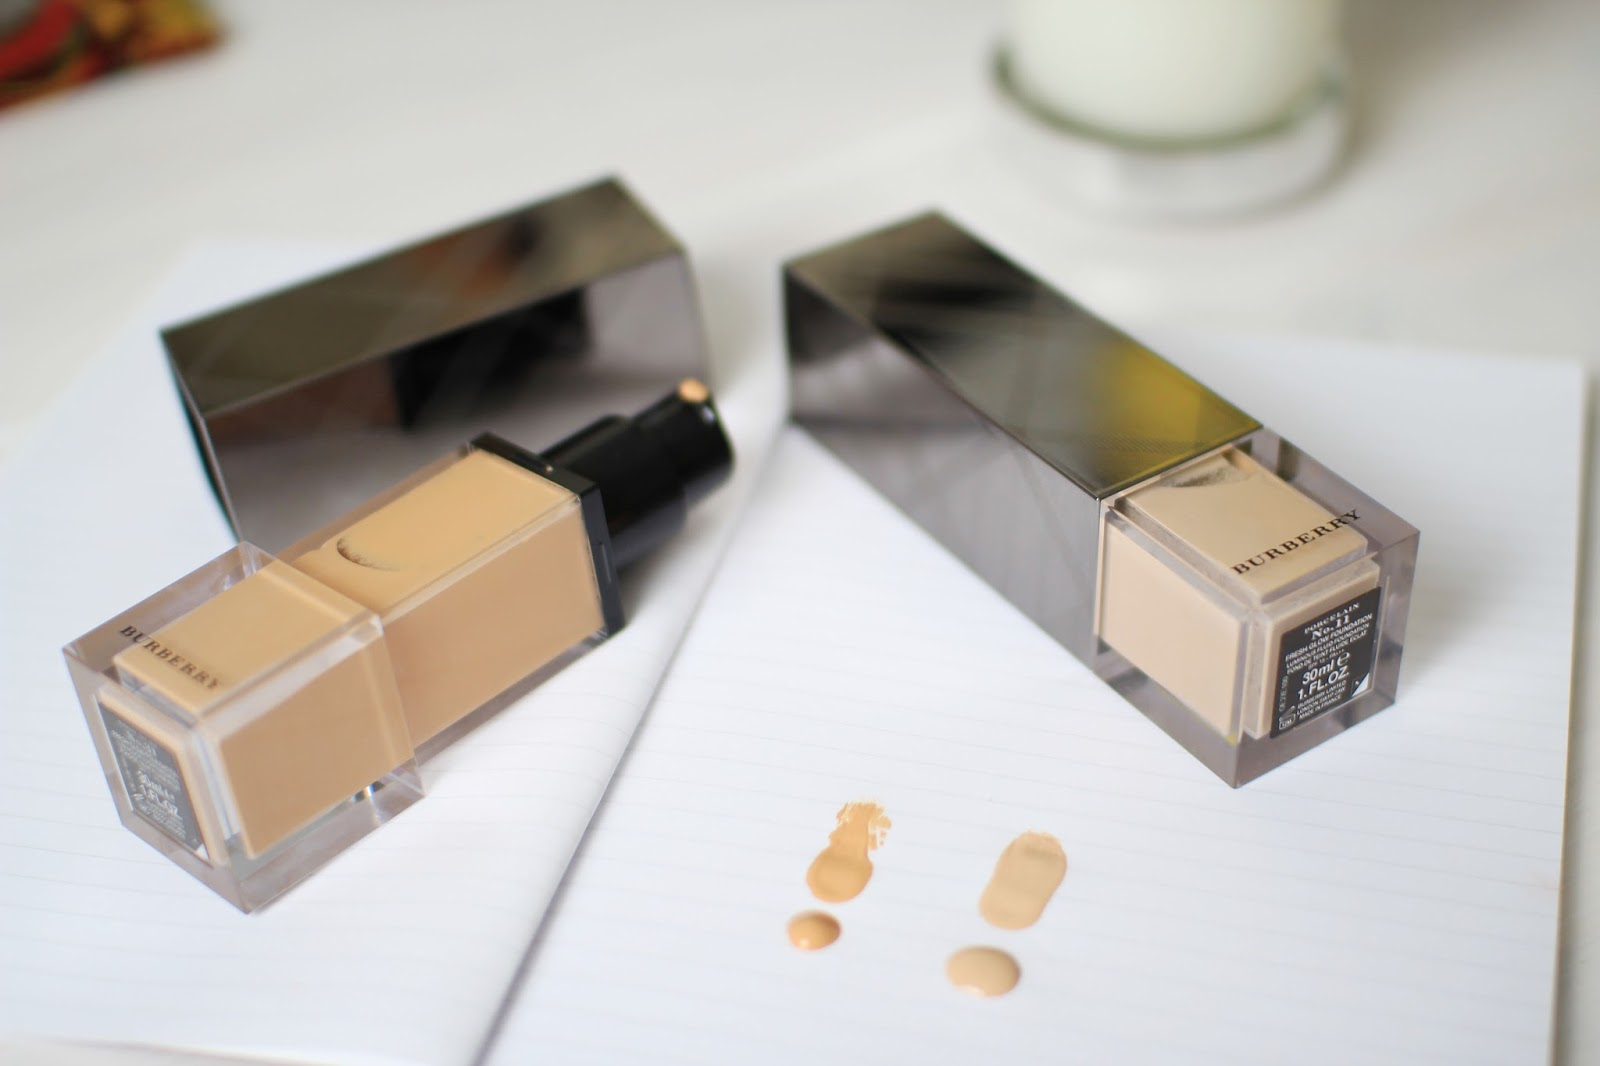 Burberry Fresh Glow Foundation in 11 and 31 Porcelain and Rosy Nude